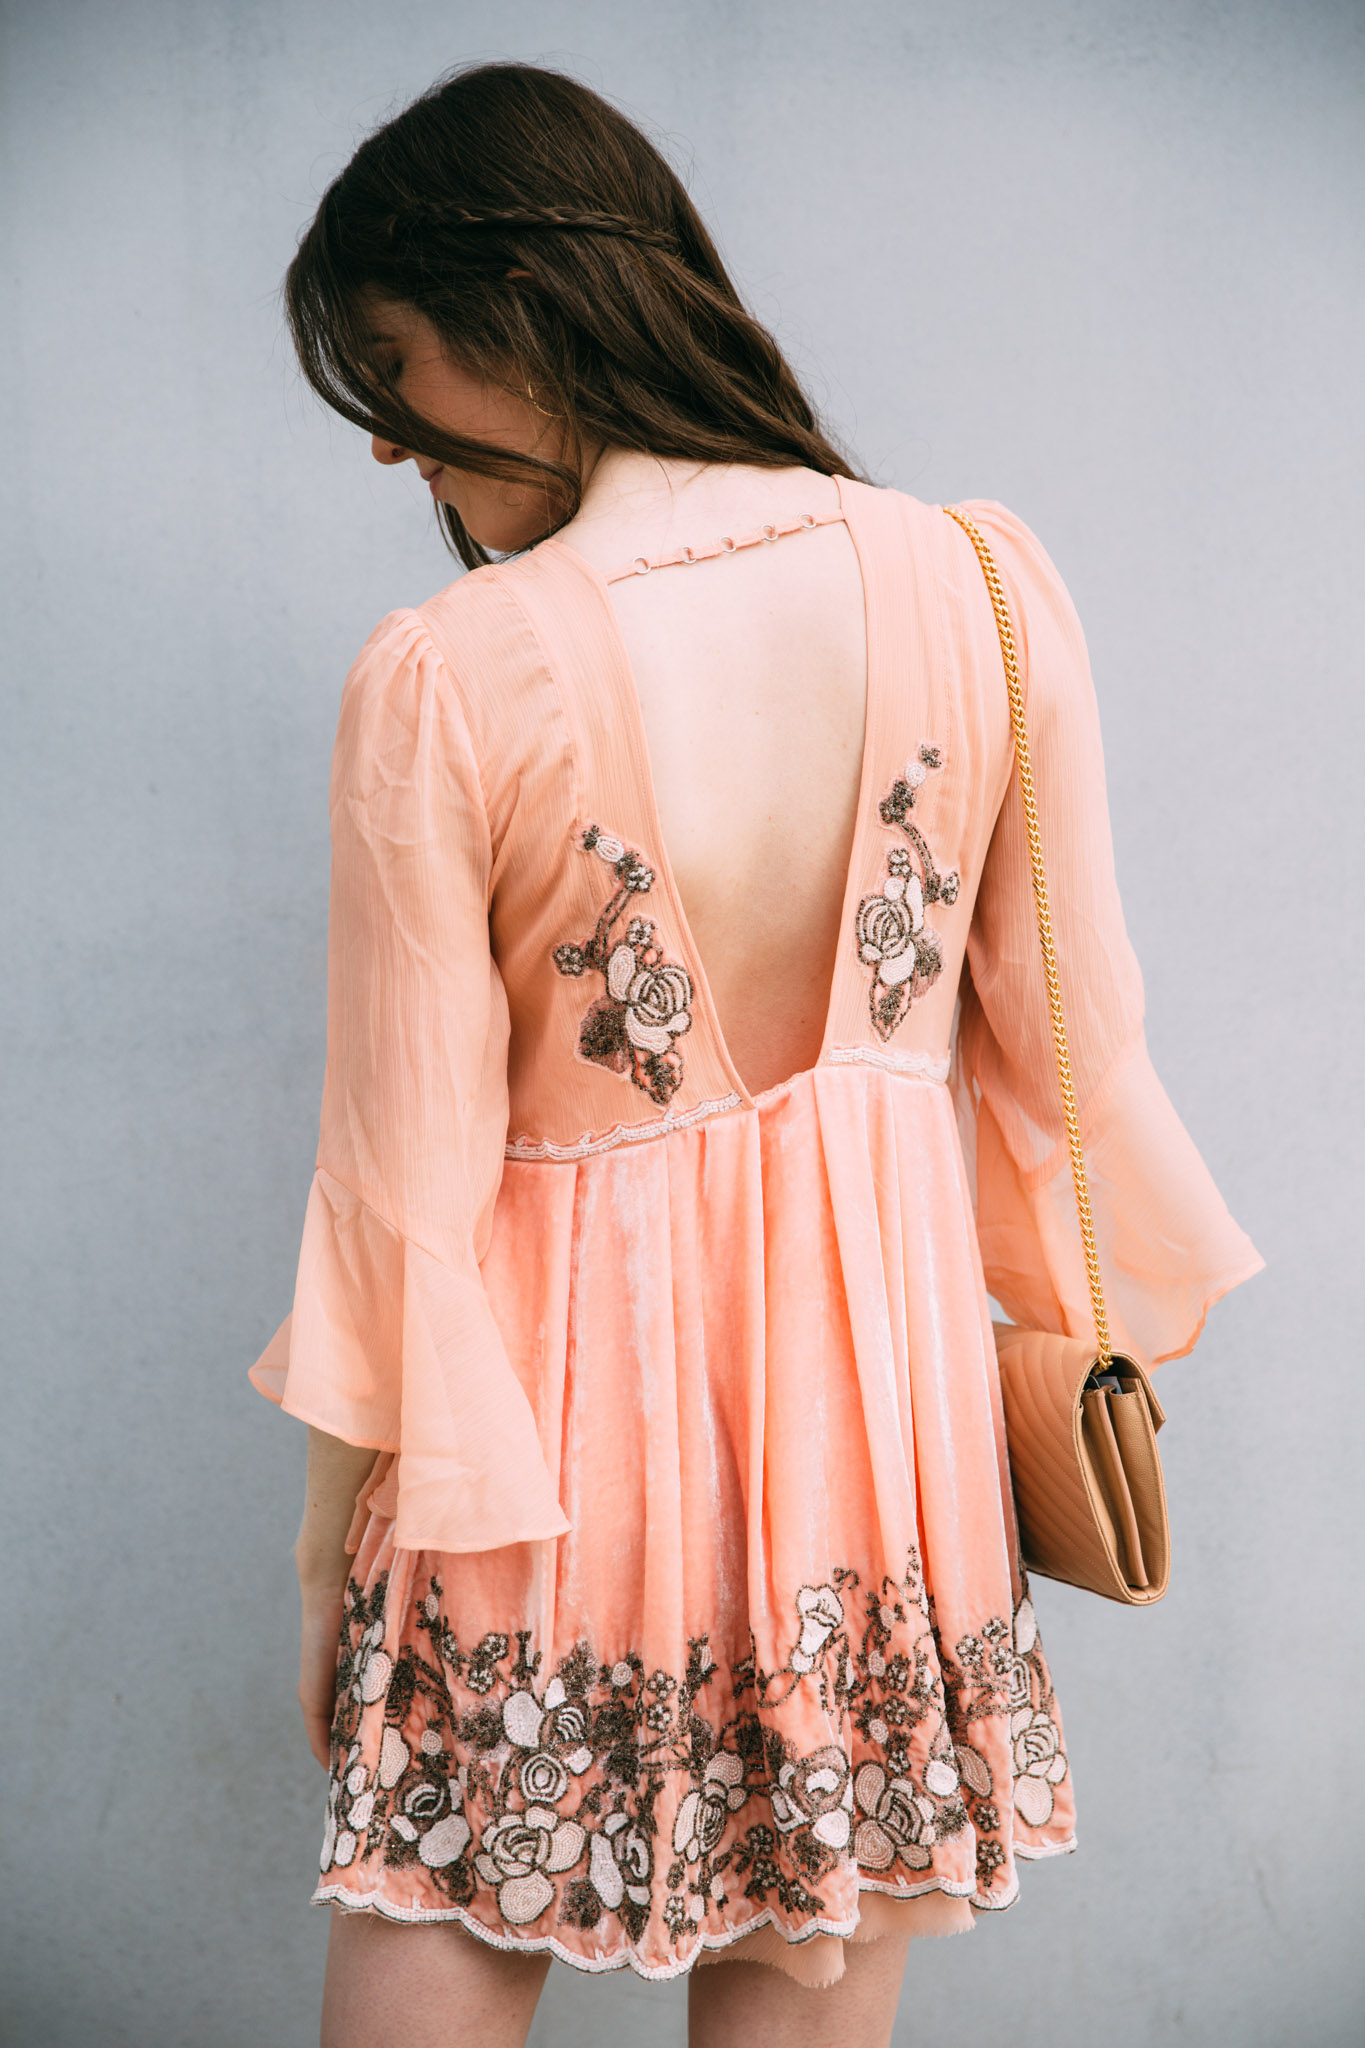 Free People backless dress with embellishment